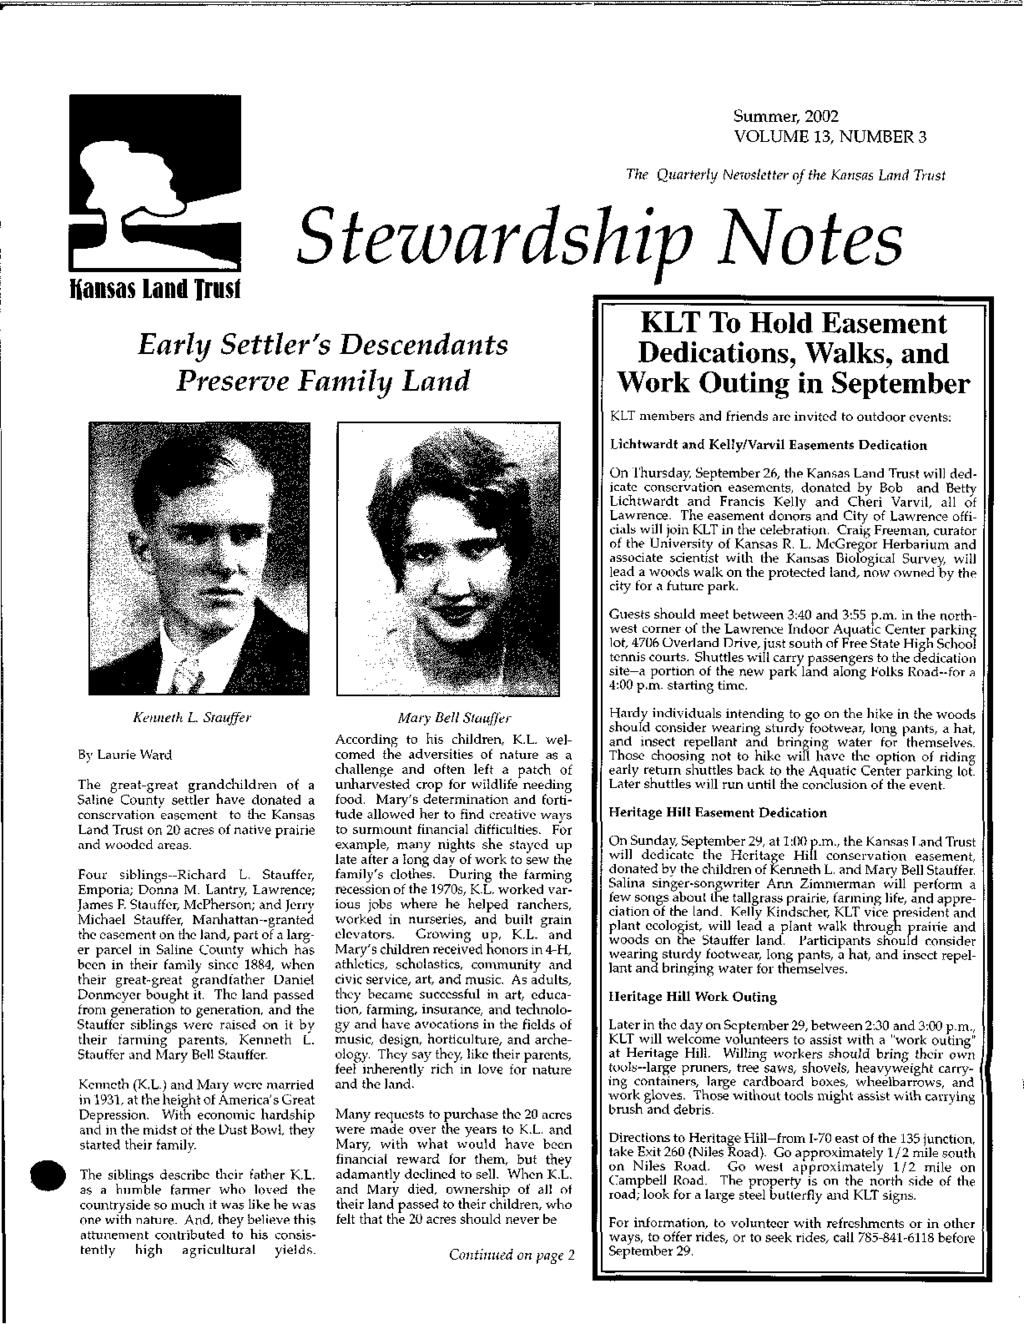 Hansas Land Trust Early Settler's Descendants Preserve Family Land Summer, 2002 VOLUME 13, NUMBER 3 The Quarterly Newsletter of the Kansas Land Trust tezvardship }Jotes KLT To Hold Easement